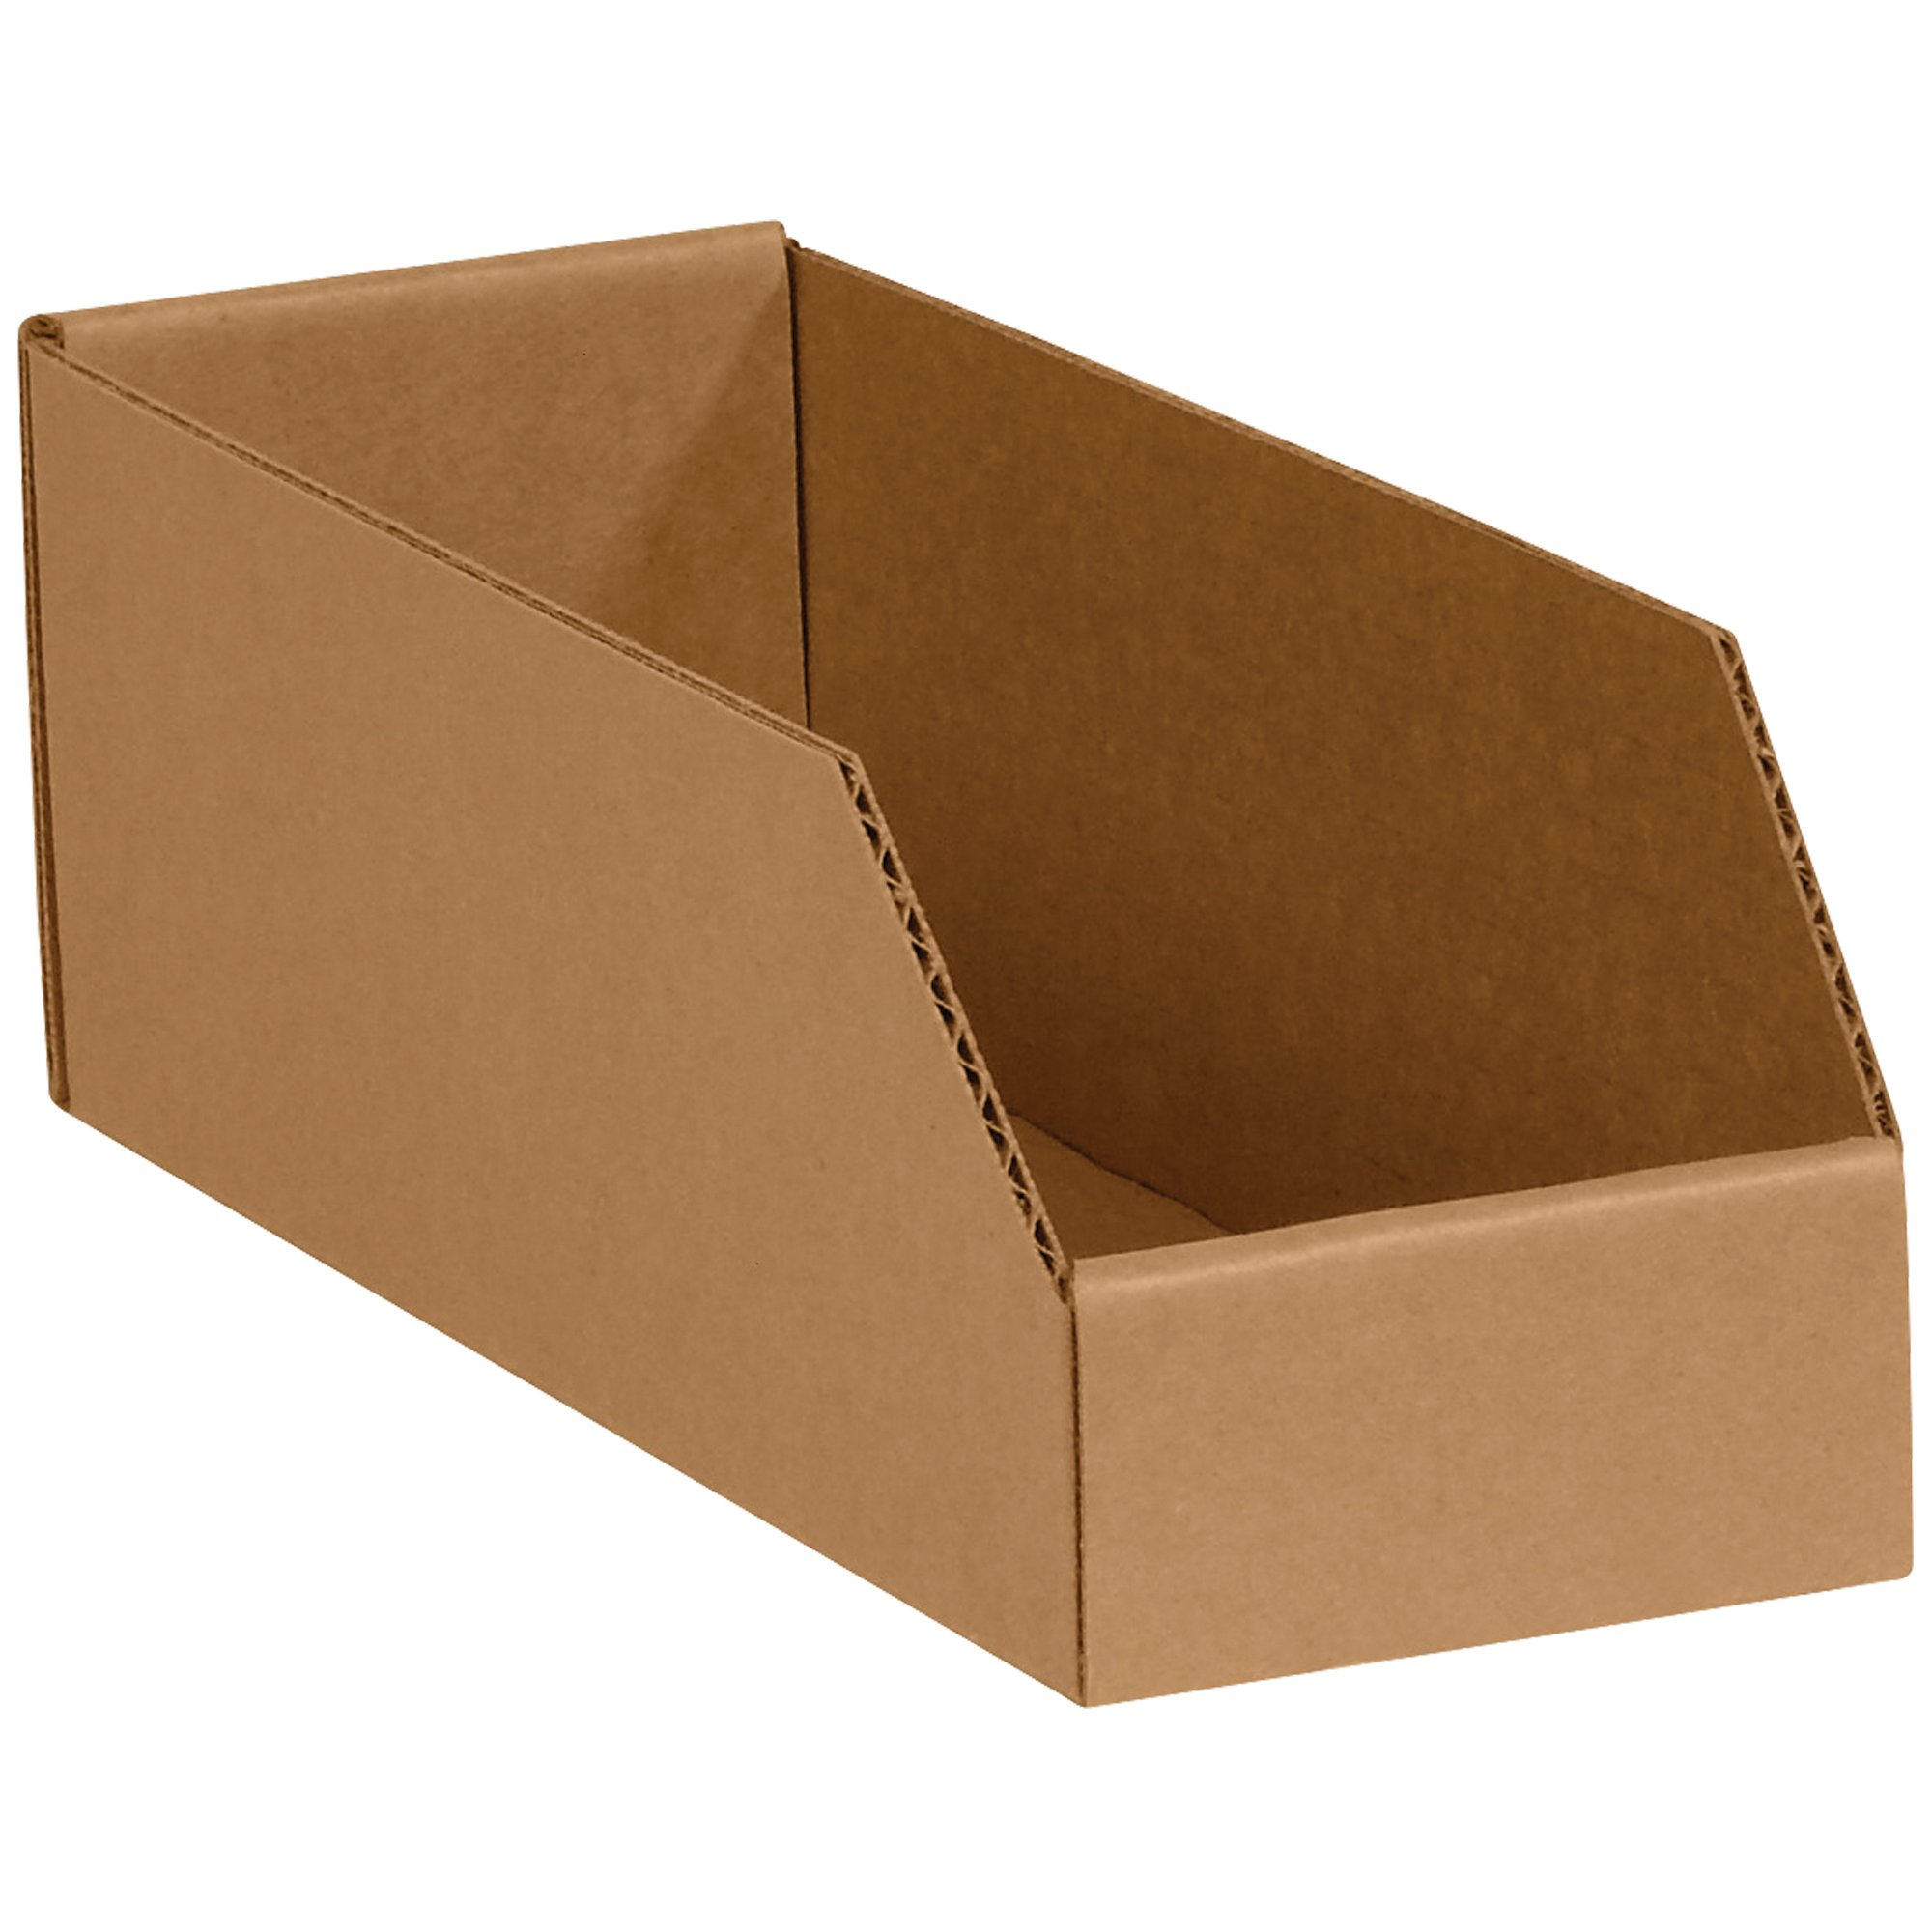 Aviditi Open Top Bin Boxes, 4'' x 12'' x 4-1/2'', Kraft, Pack of 50 (BINMT412K) by Aviditi